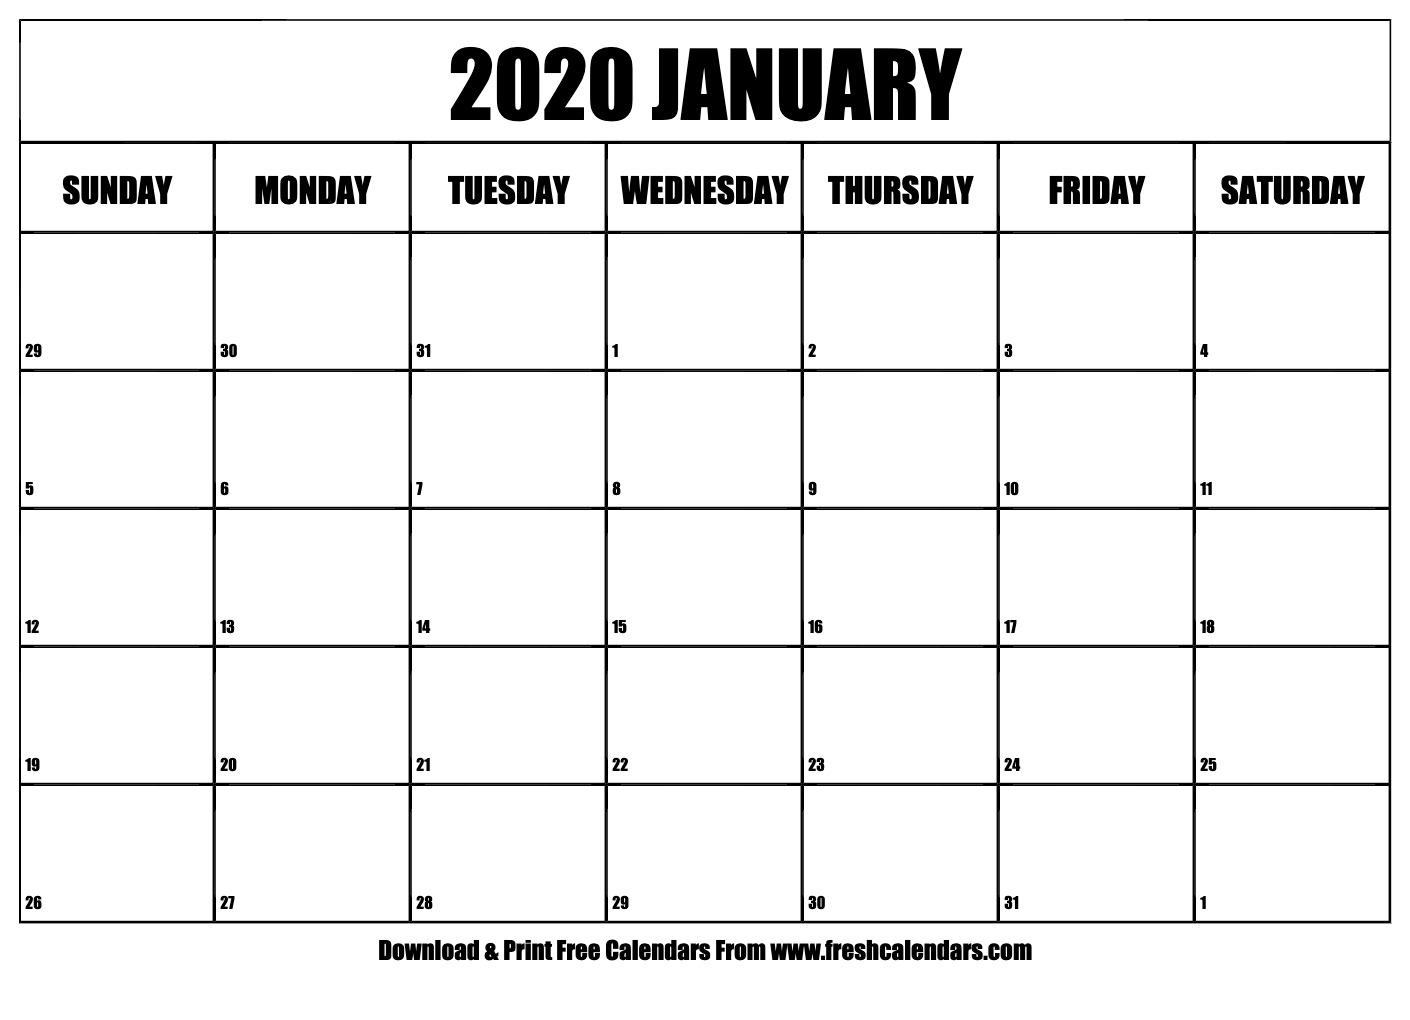 Free Printable January 2020 Calendar intended for Waterproof Calendar January 2020